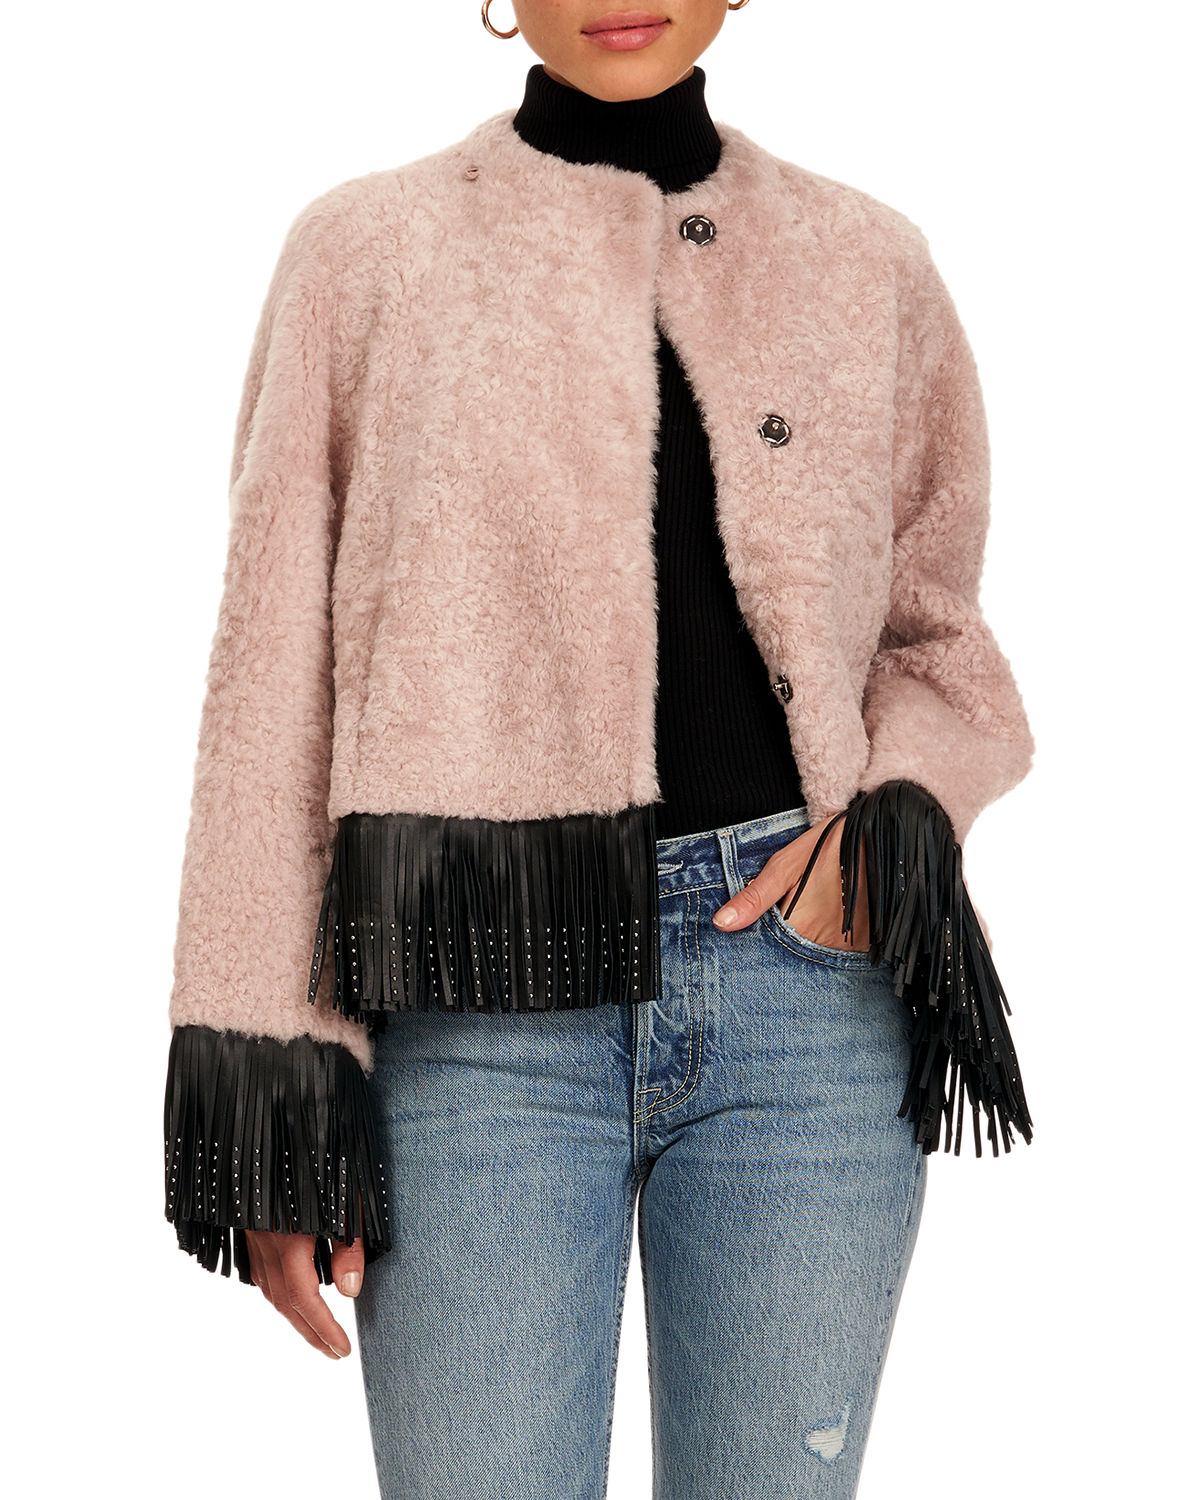 Christia SHEARLING LAMB JACKET WITH FRINGE